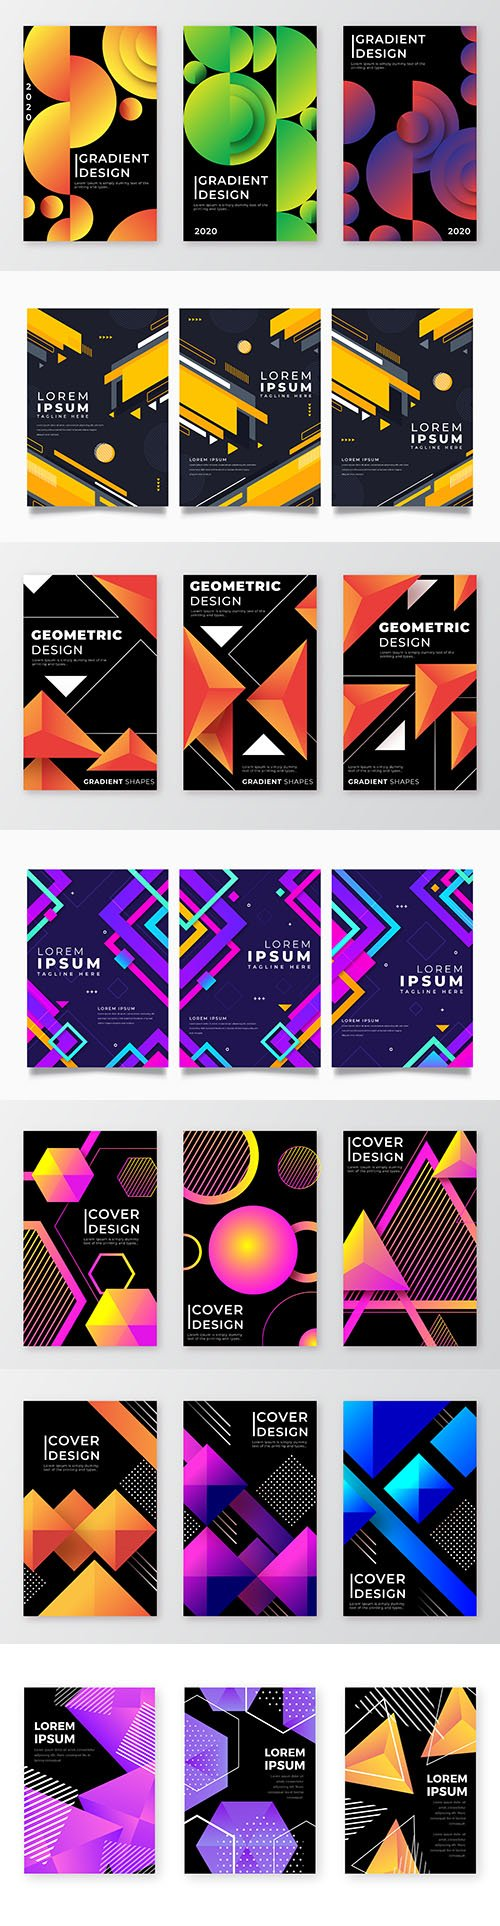 Gradient geometric shapes cover dark background